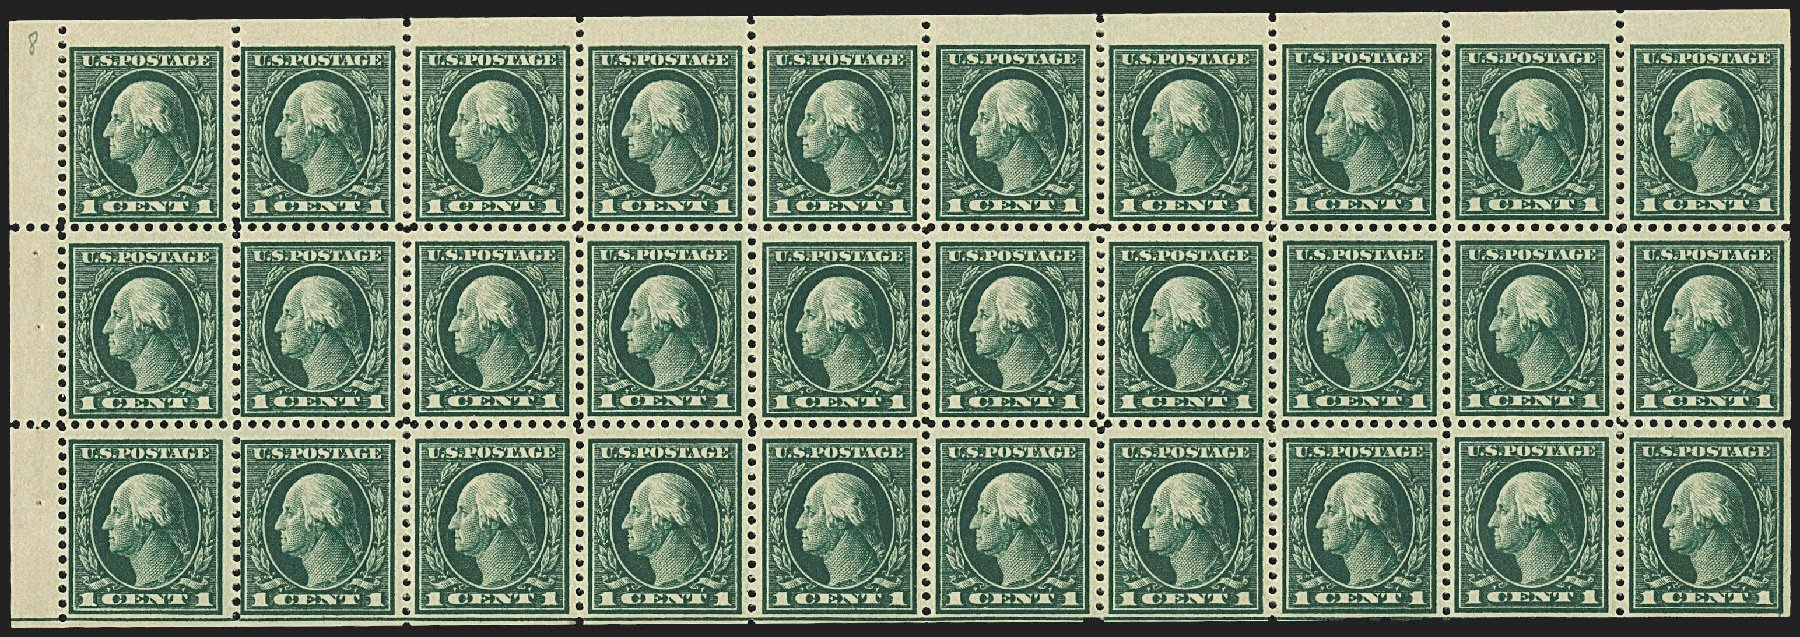 Costs of US Stamps Scott Catalog # 498 - 1917 1c Washington Perf 11. Robert Siegel Auction Galleries, Jul 2015, Sale 1107, Lot 496